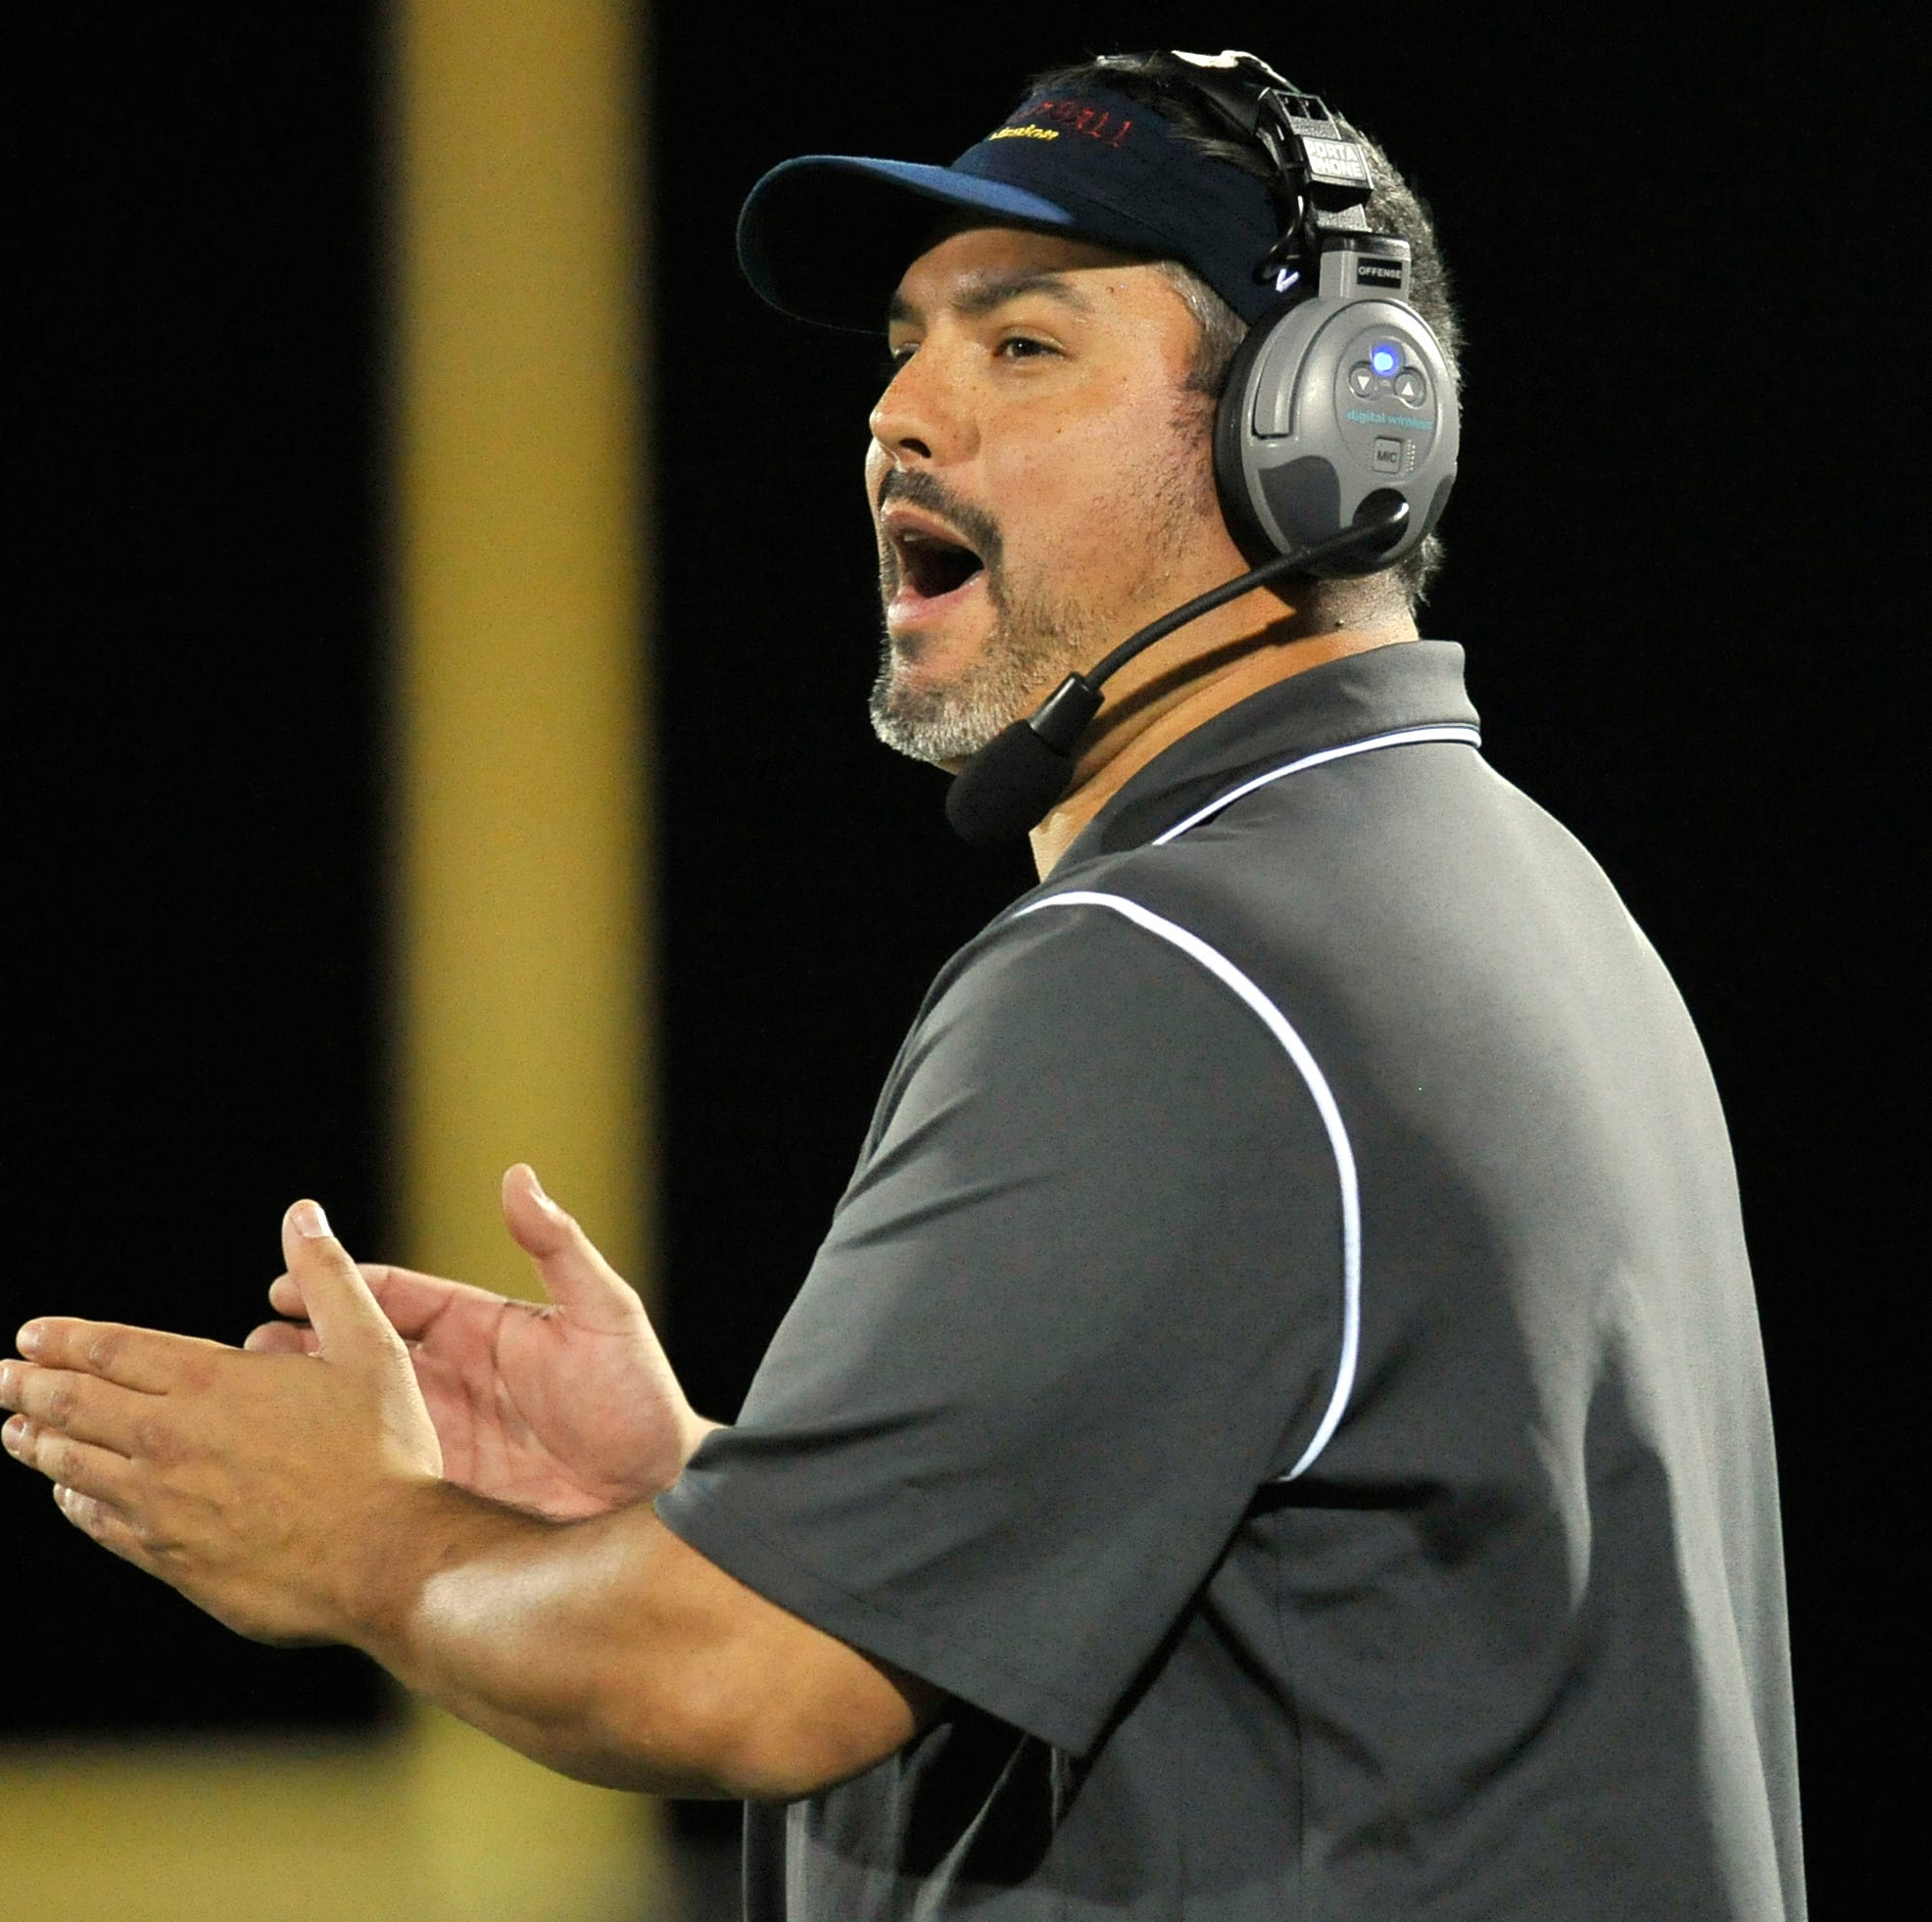 NJ football: David Schuman hired as Red Bank Regional head coach